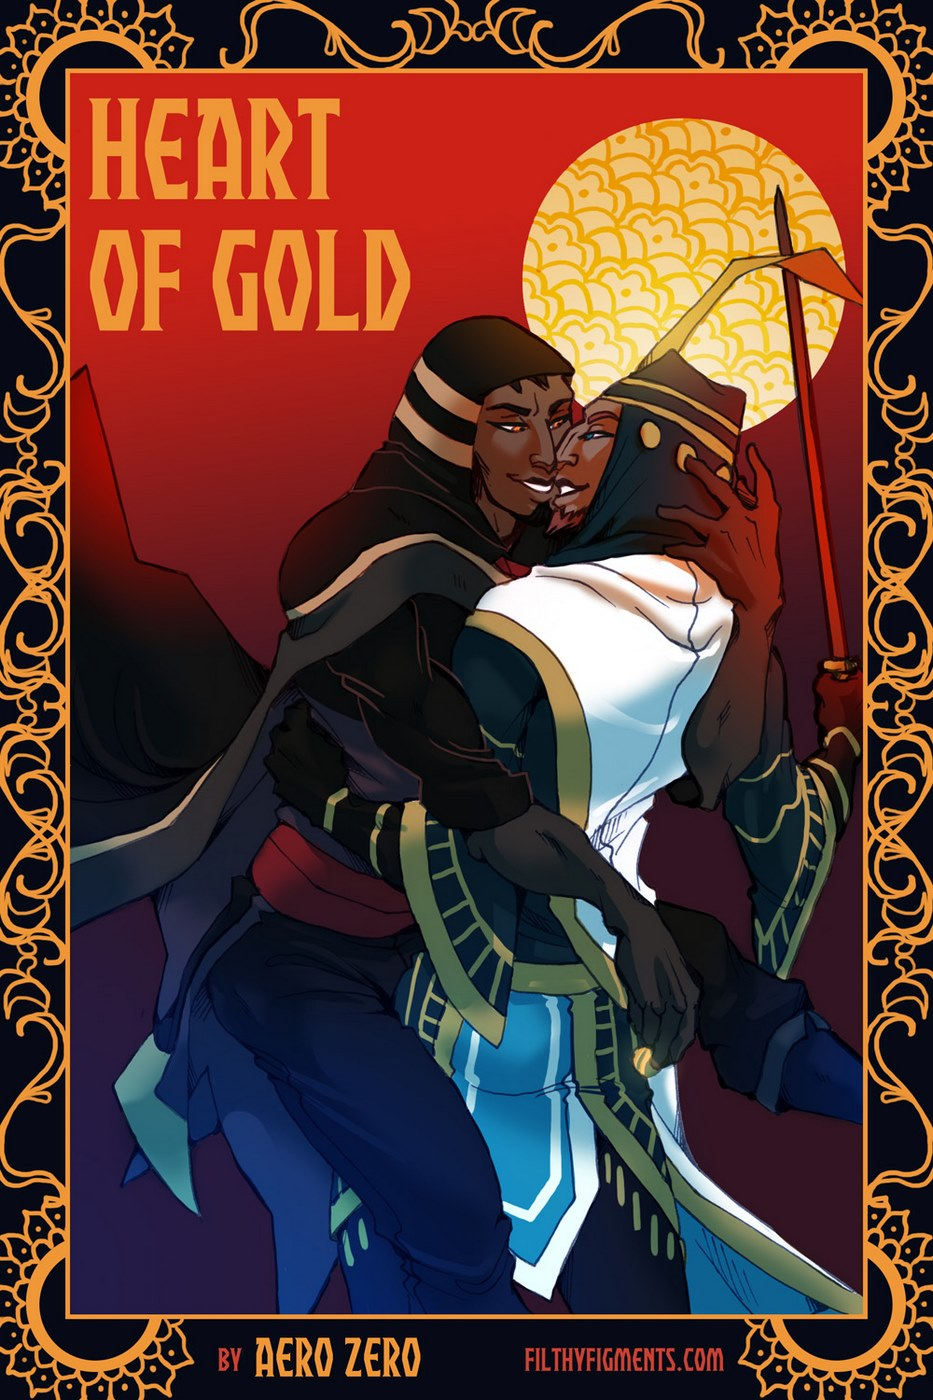 Gay -Heart of Gold image 01